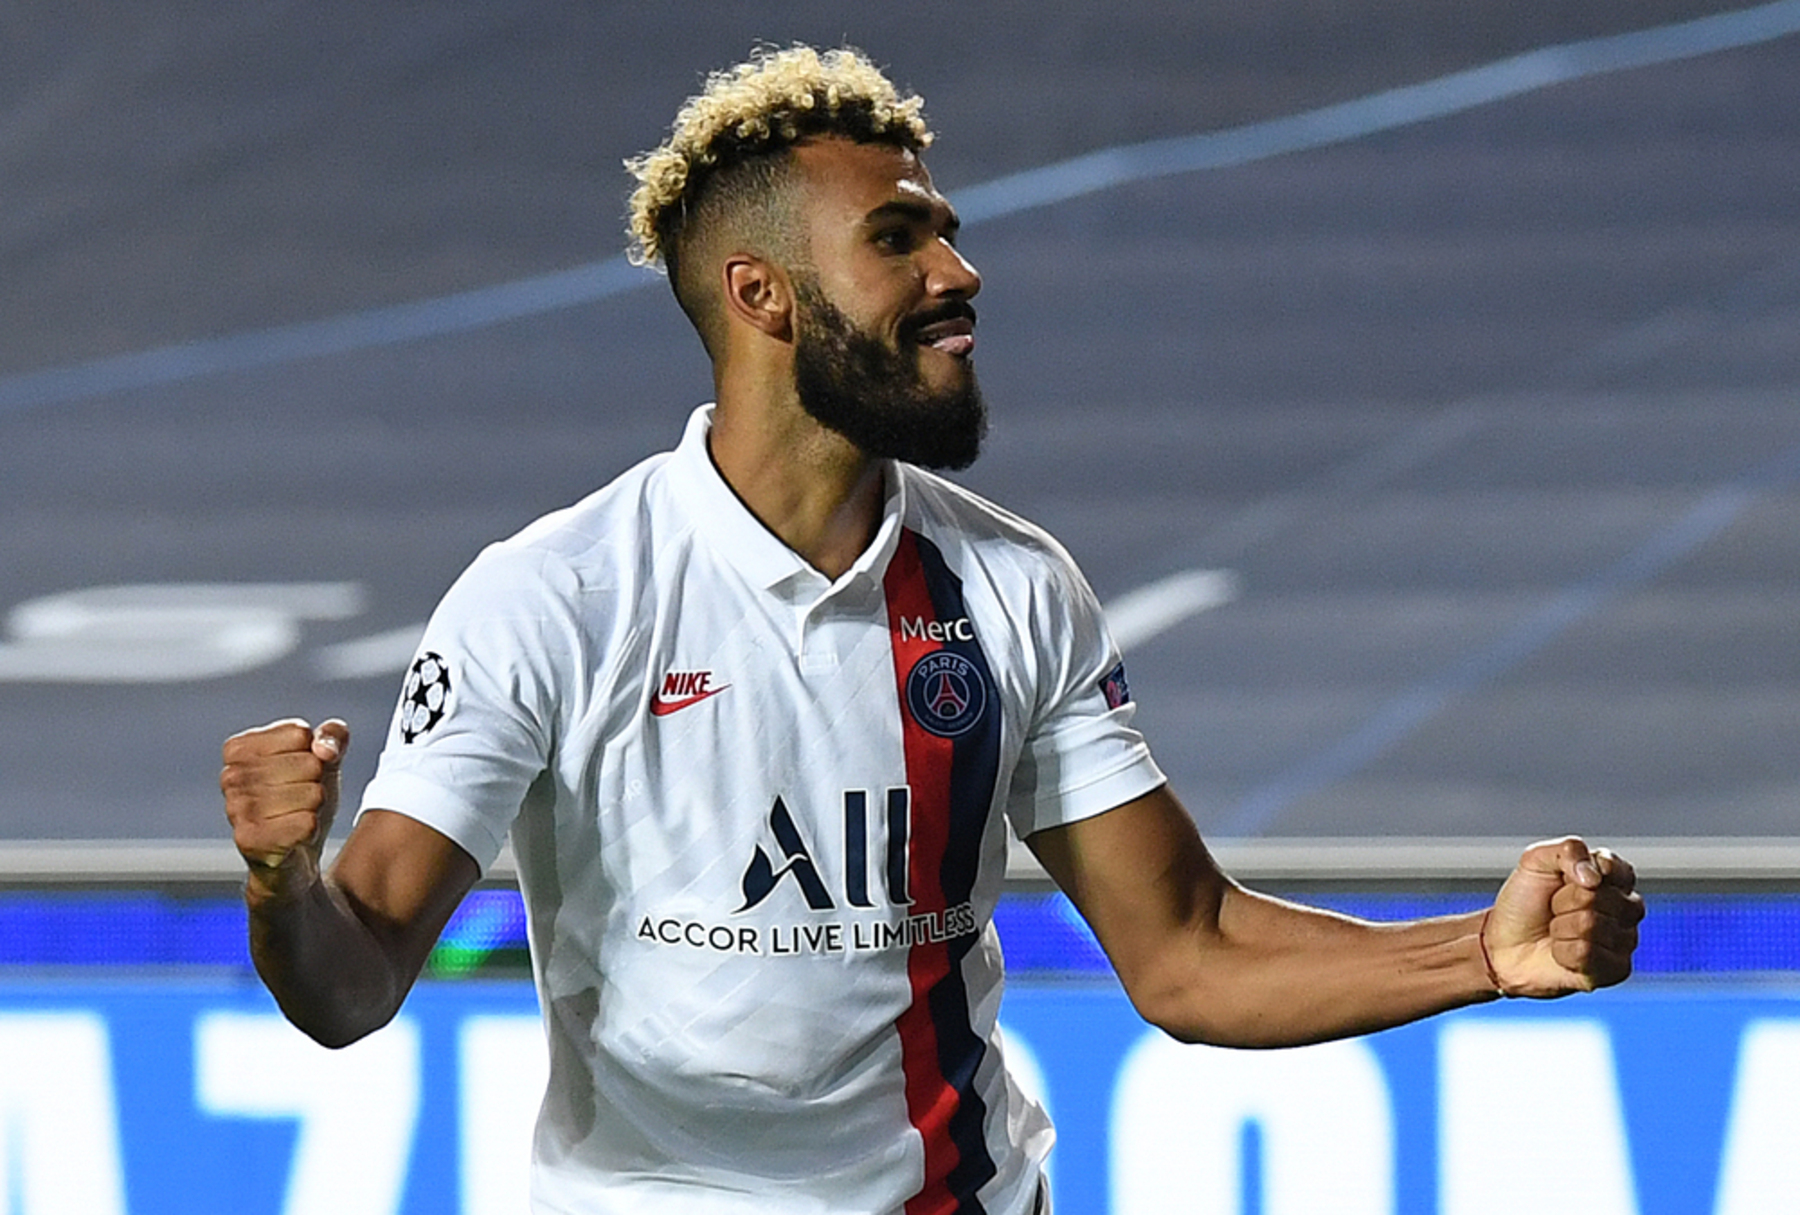 U0026 39 We Never Lost Hope Of Coming Back U0026 39 U2014 Choupo Moting On PSG